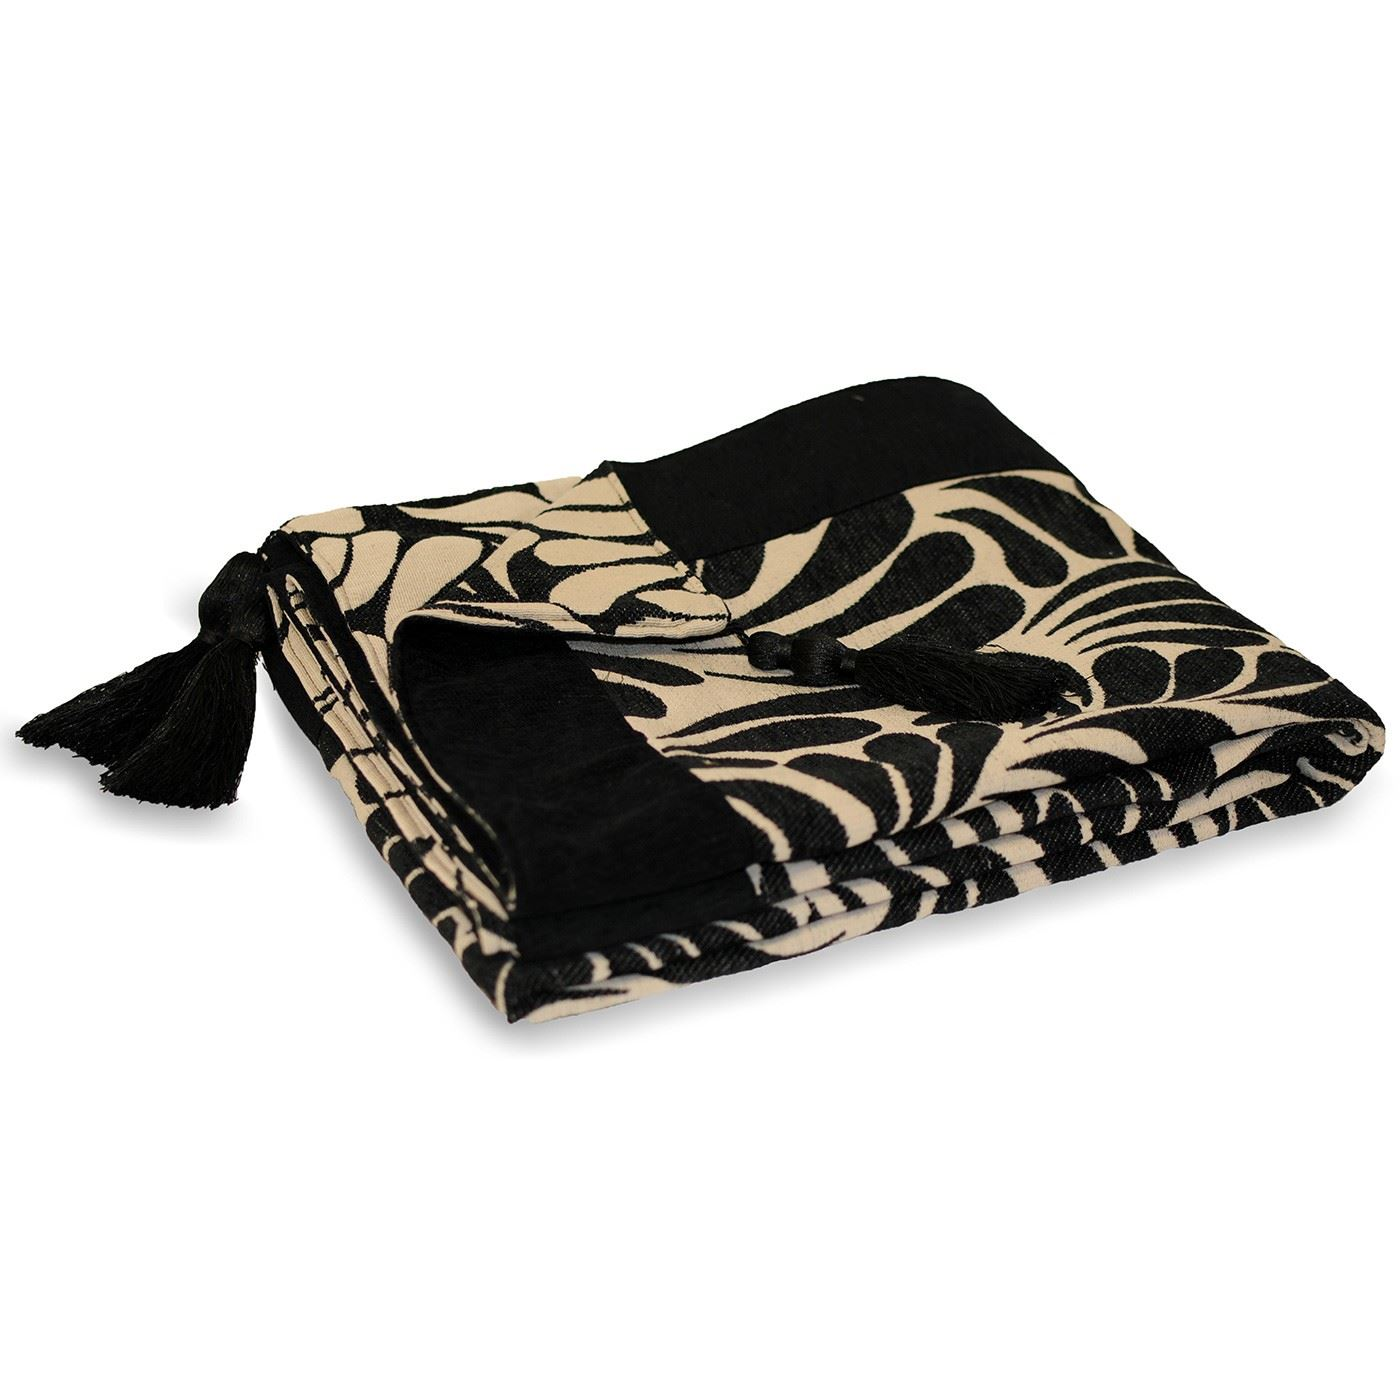 Blanket Throwovers Throw Over Chenille Bed Sofa Chair